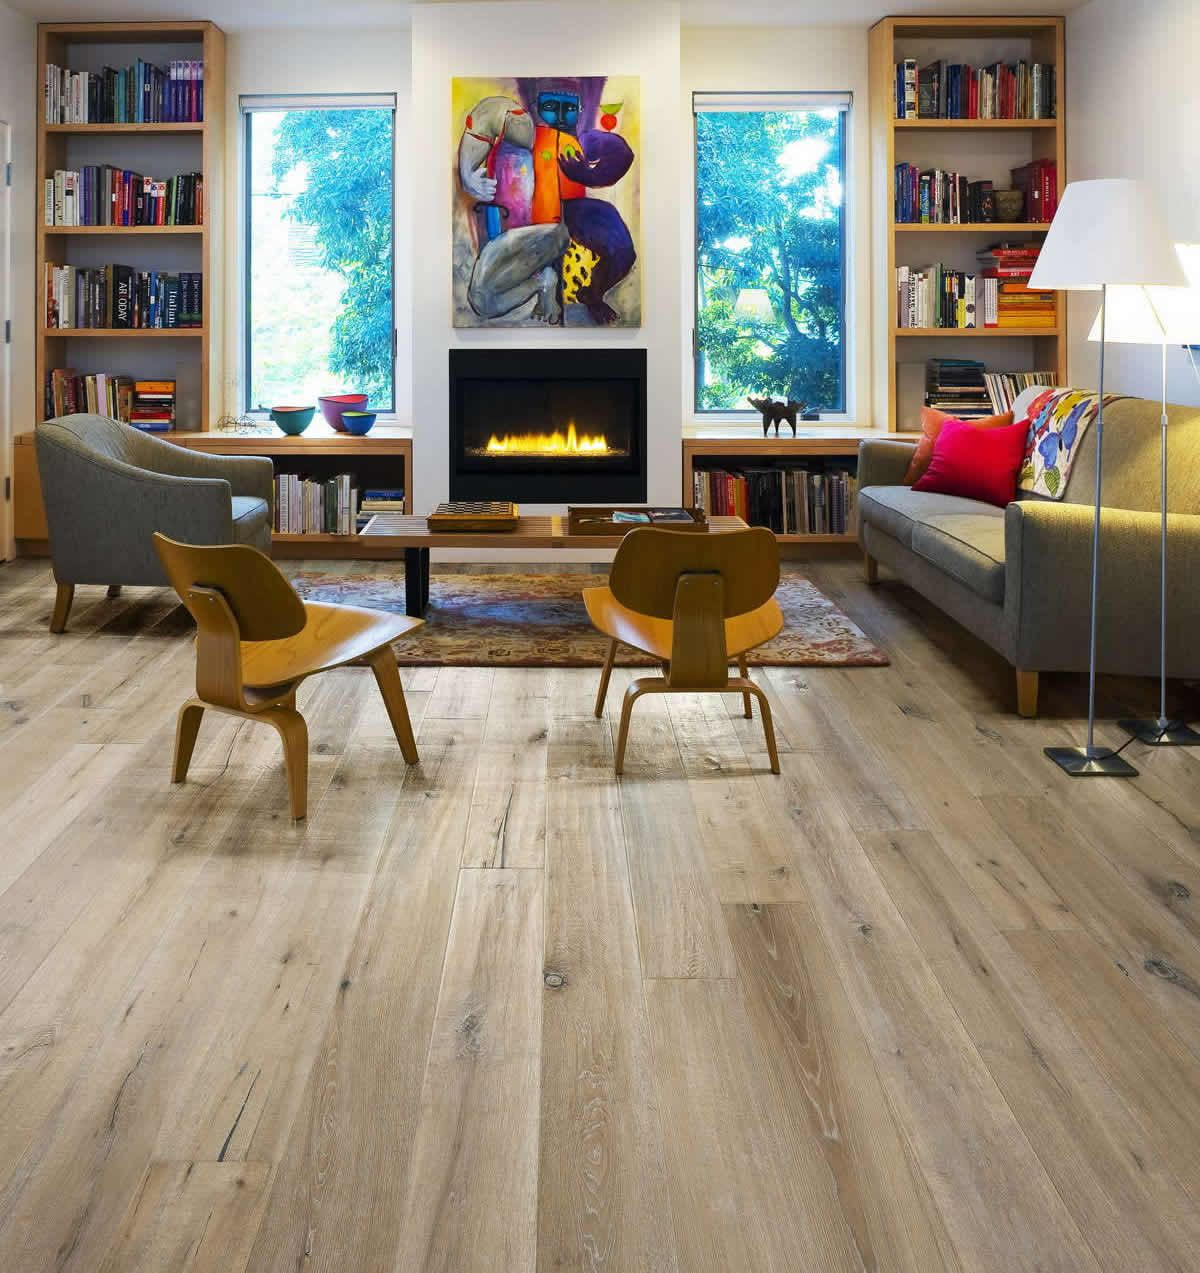 engineered hardwood floors charlotte nc of kahrs artisan oak linen engineered wood flooring pinterest with bring light and life into your home with the beautiful kahrs artisan oak linen engineered wood flooring from flooringsupplies co uk